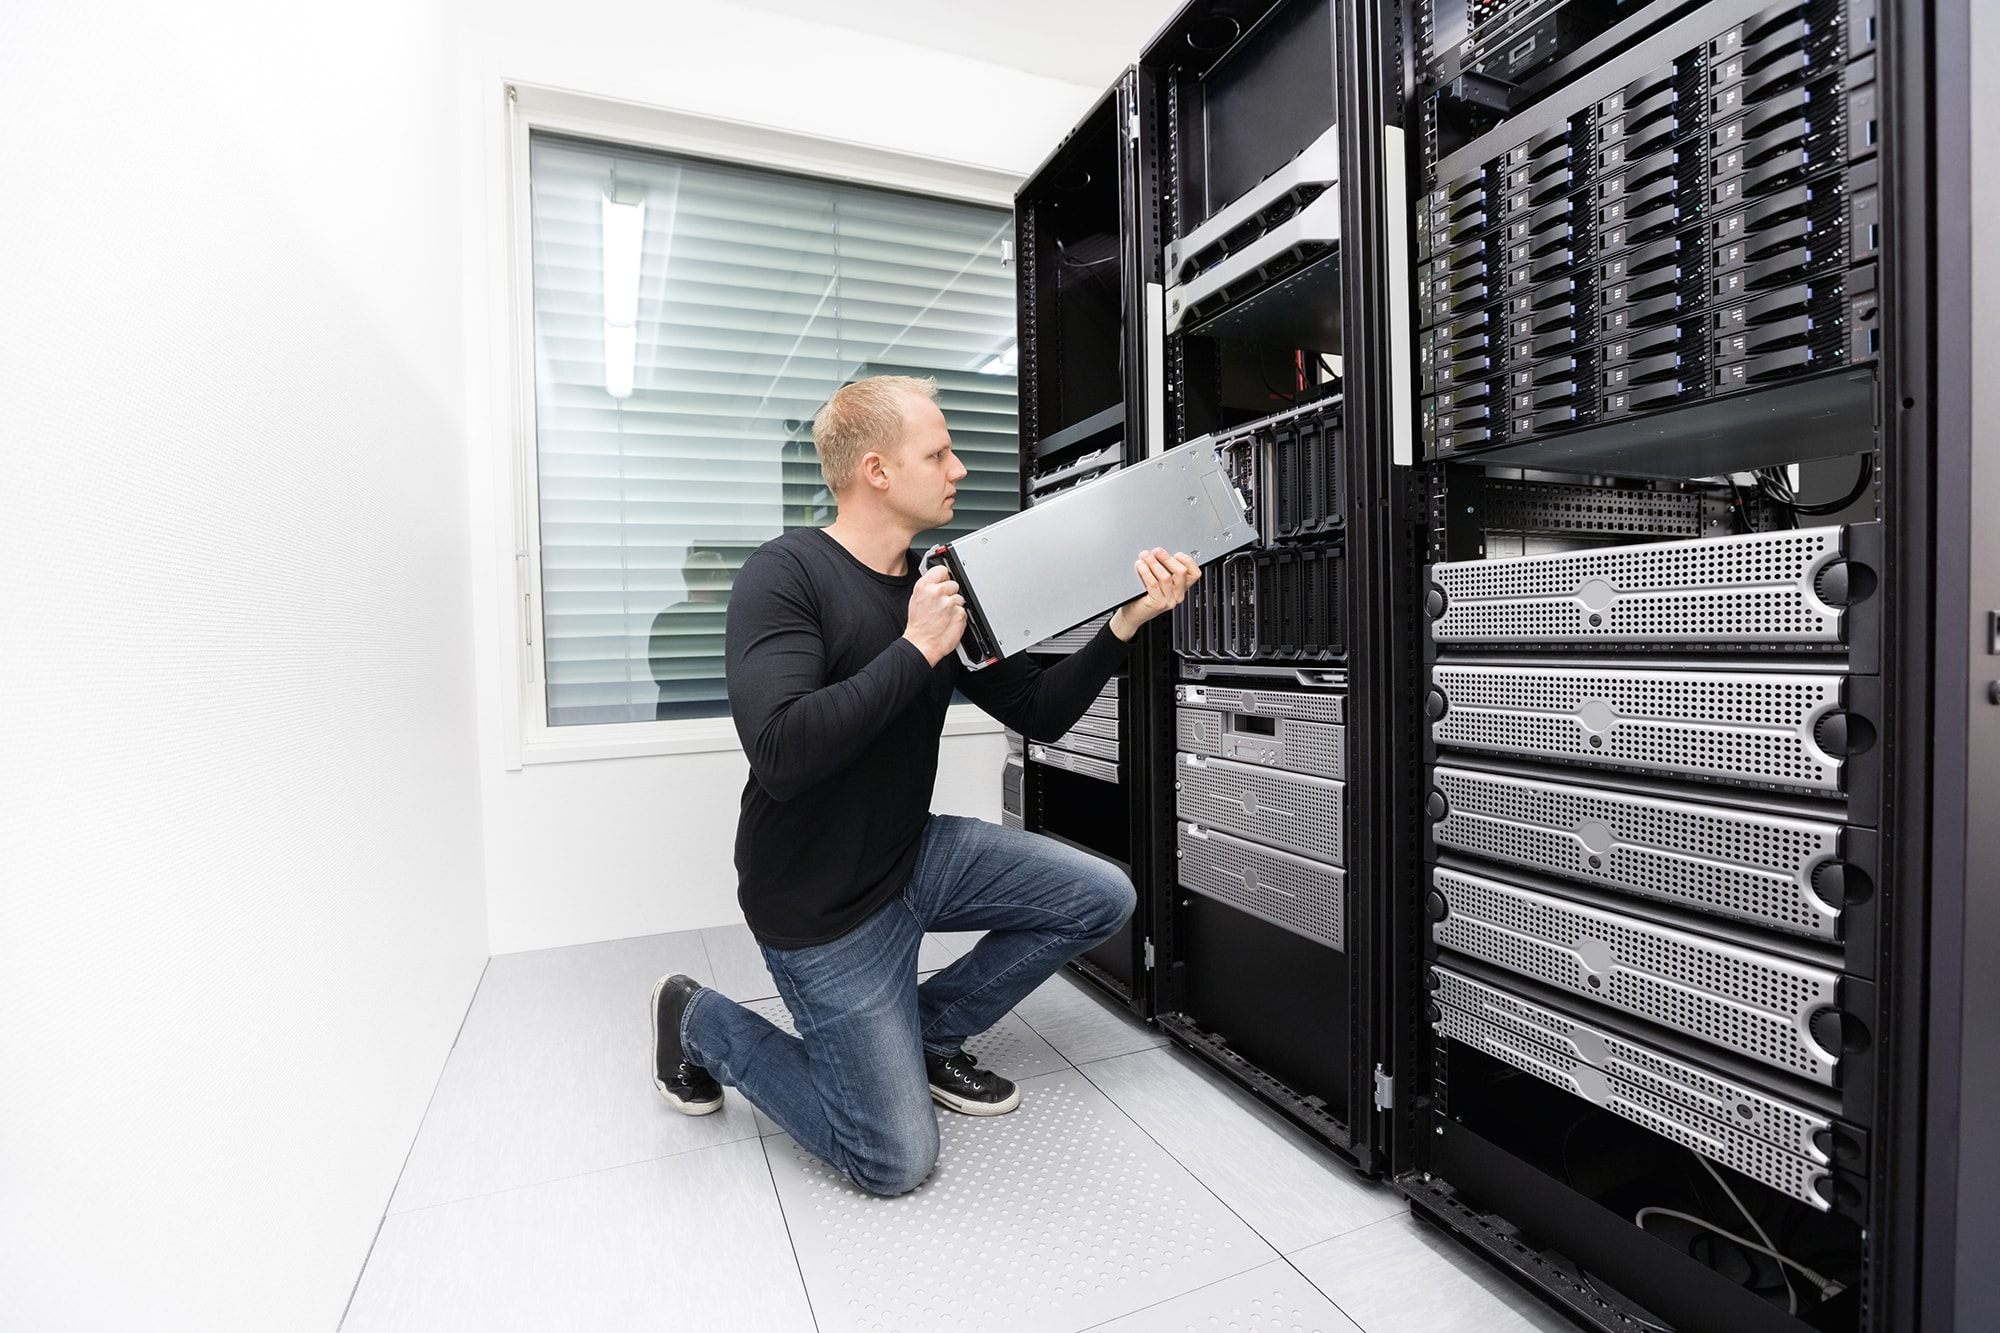 A person works with server